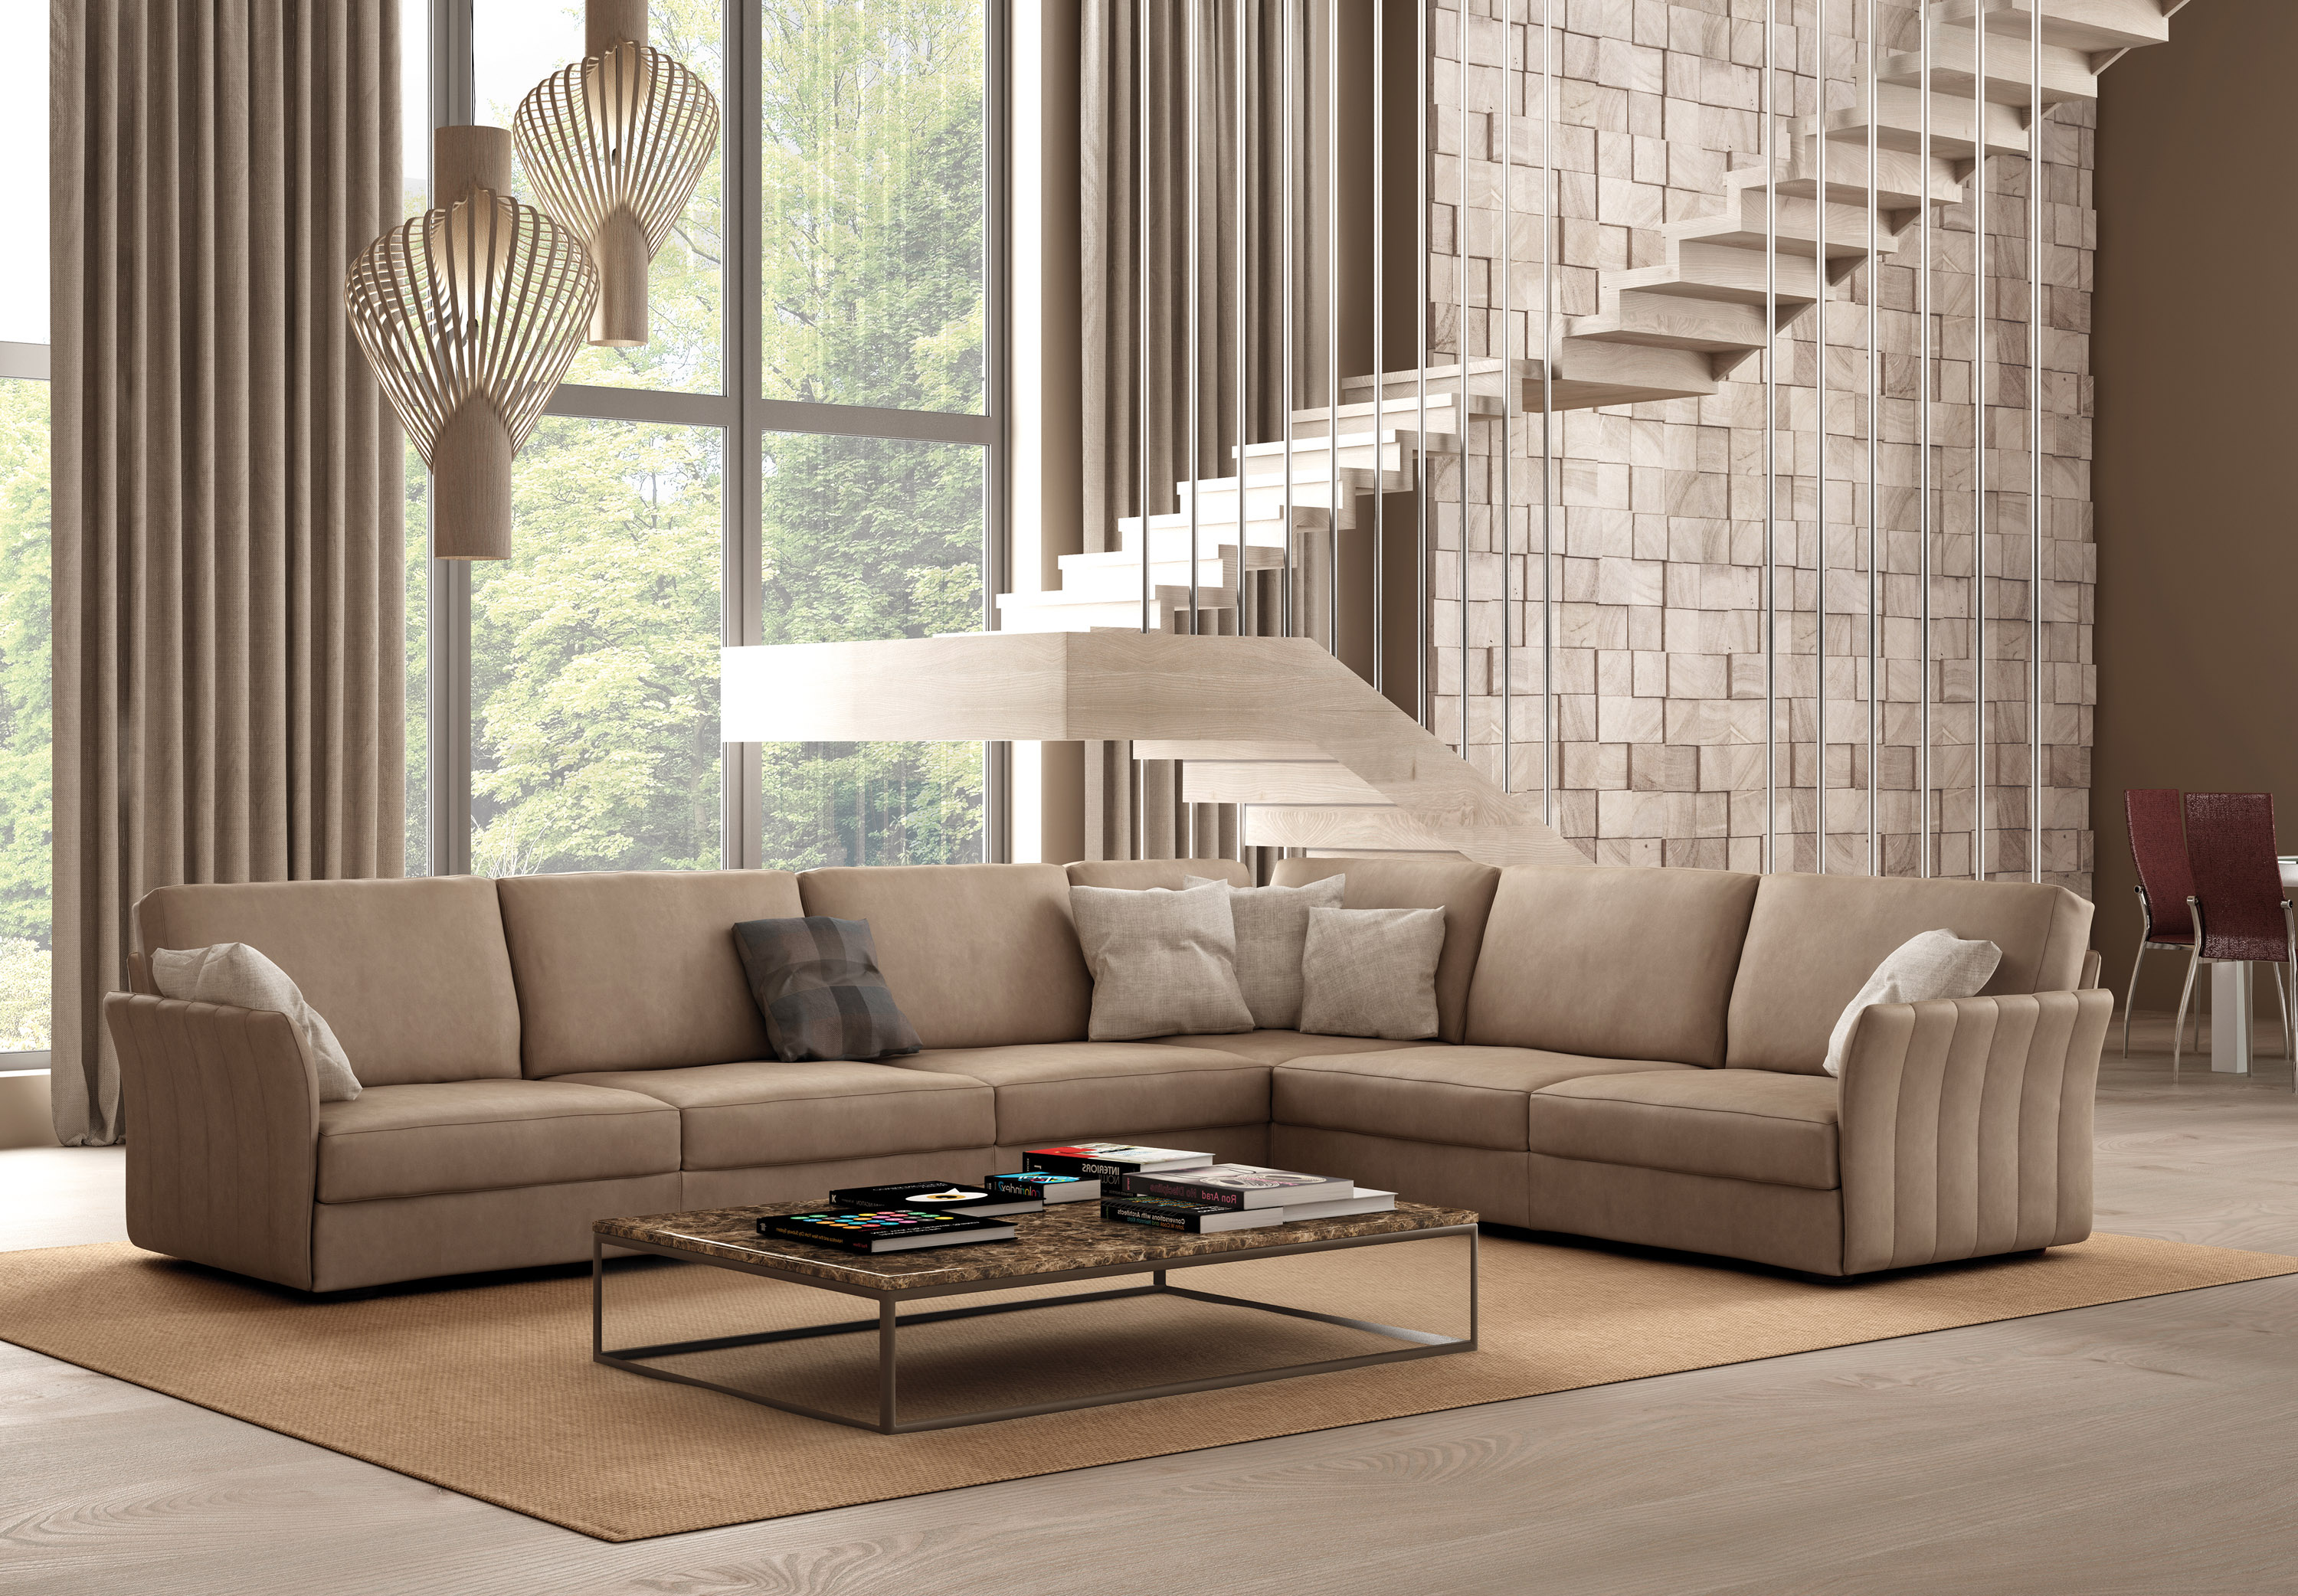 Italian Sectional Sofa Set in Luxury Leather Fort Worth Texas IDP